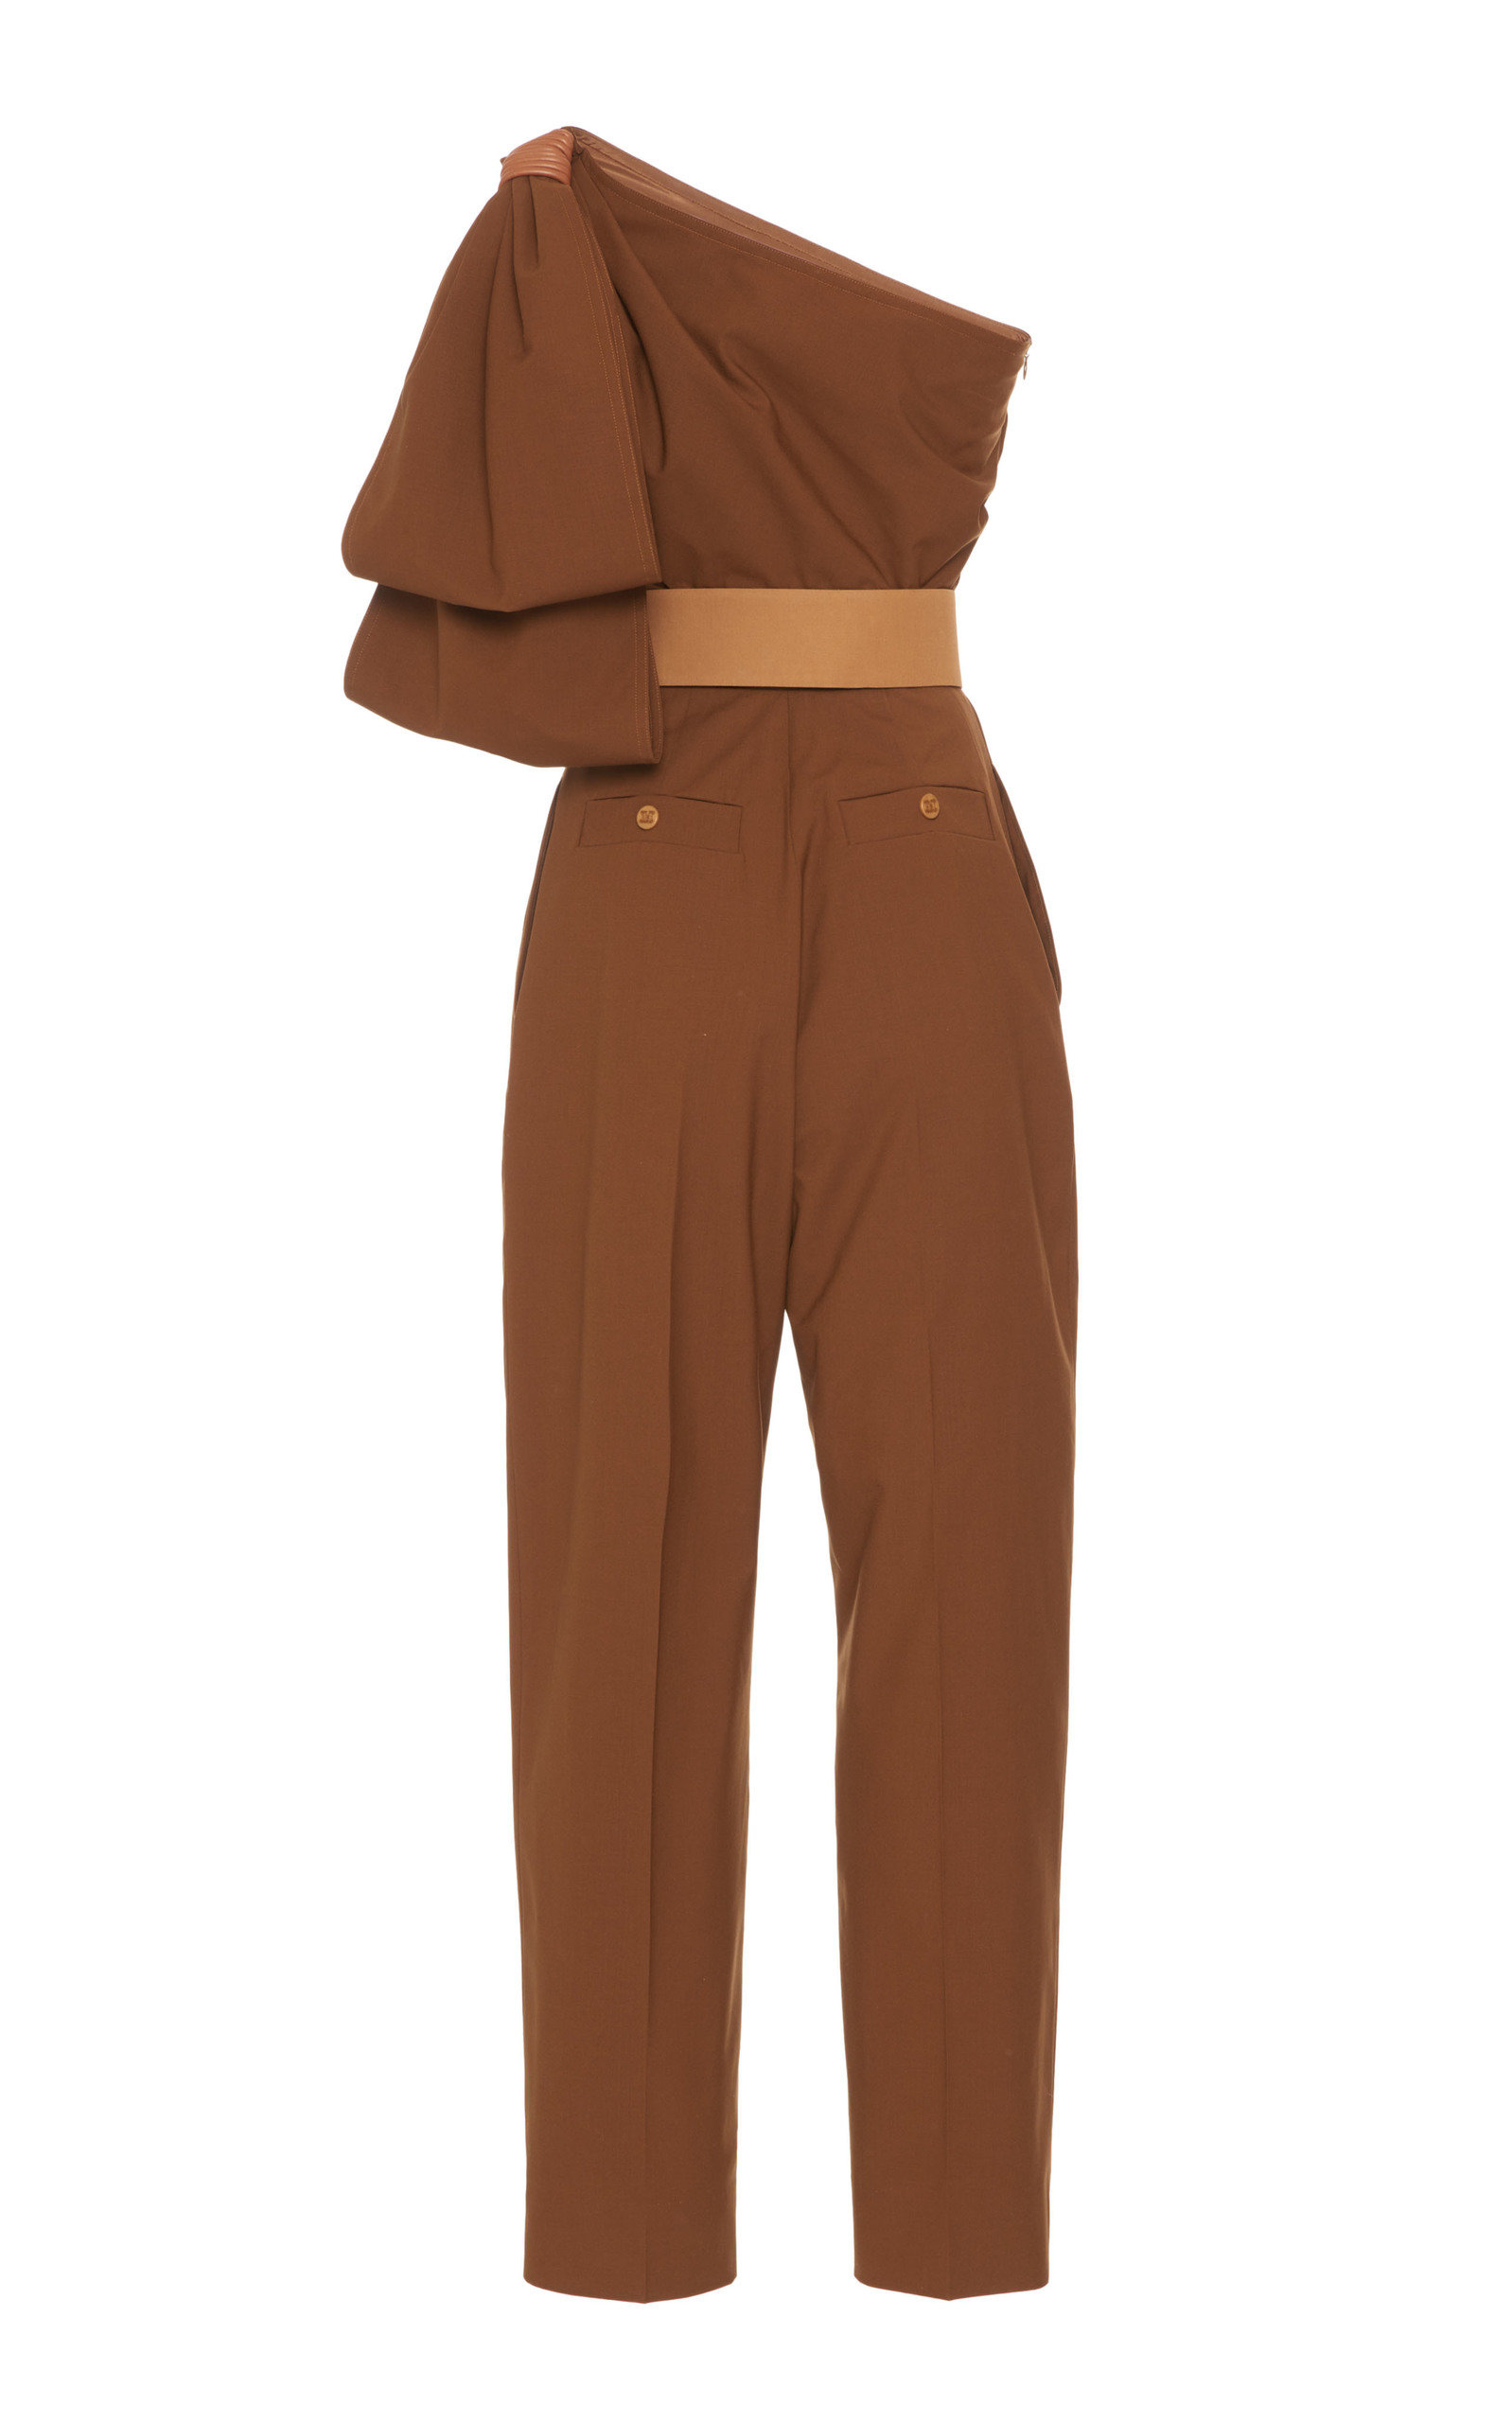 1b760910458 Max MaraAvola One-Shoulder Cotton-Poplin Jumpsuit. CLOSE. Loading. Loading.  Loading